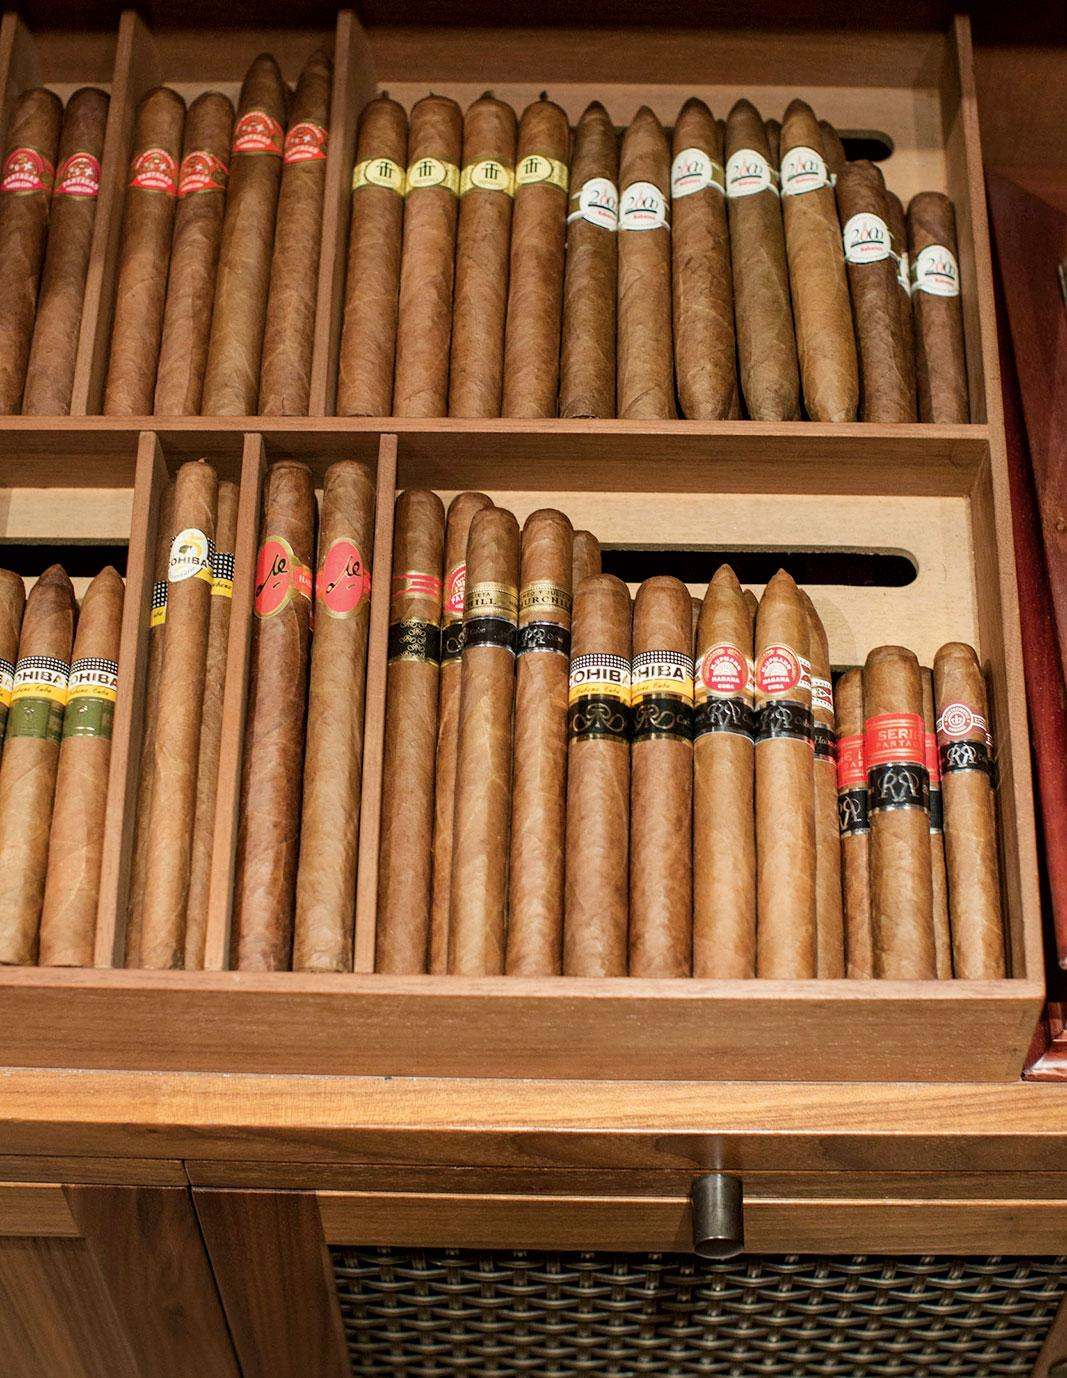 The Lanesborough Garden Room provides prize Cuban cigars with expert advice.